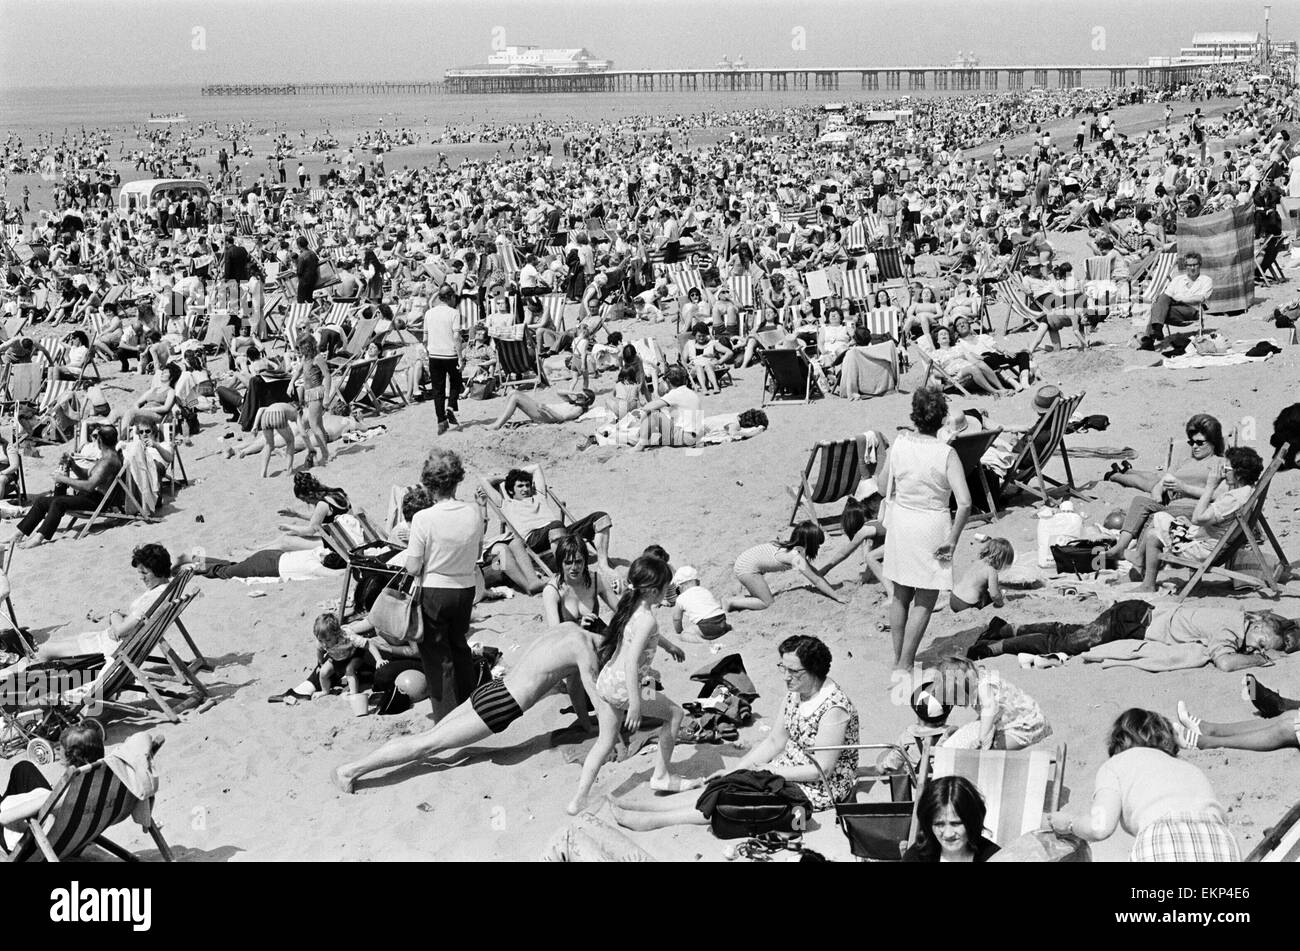 Crowds pack the Central beach at Blackpool on a hot summer's day, Lancashire. 16th July 1972. - Stock Image